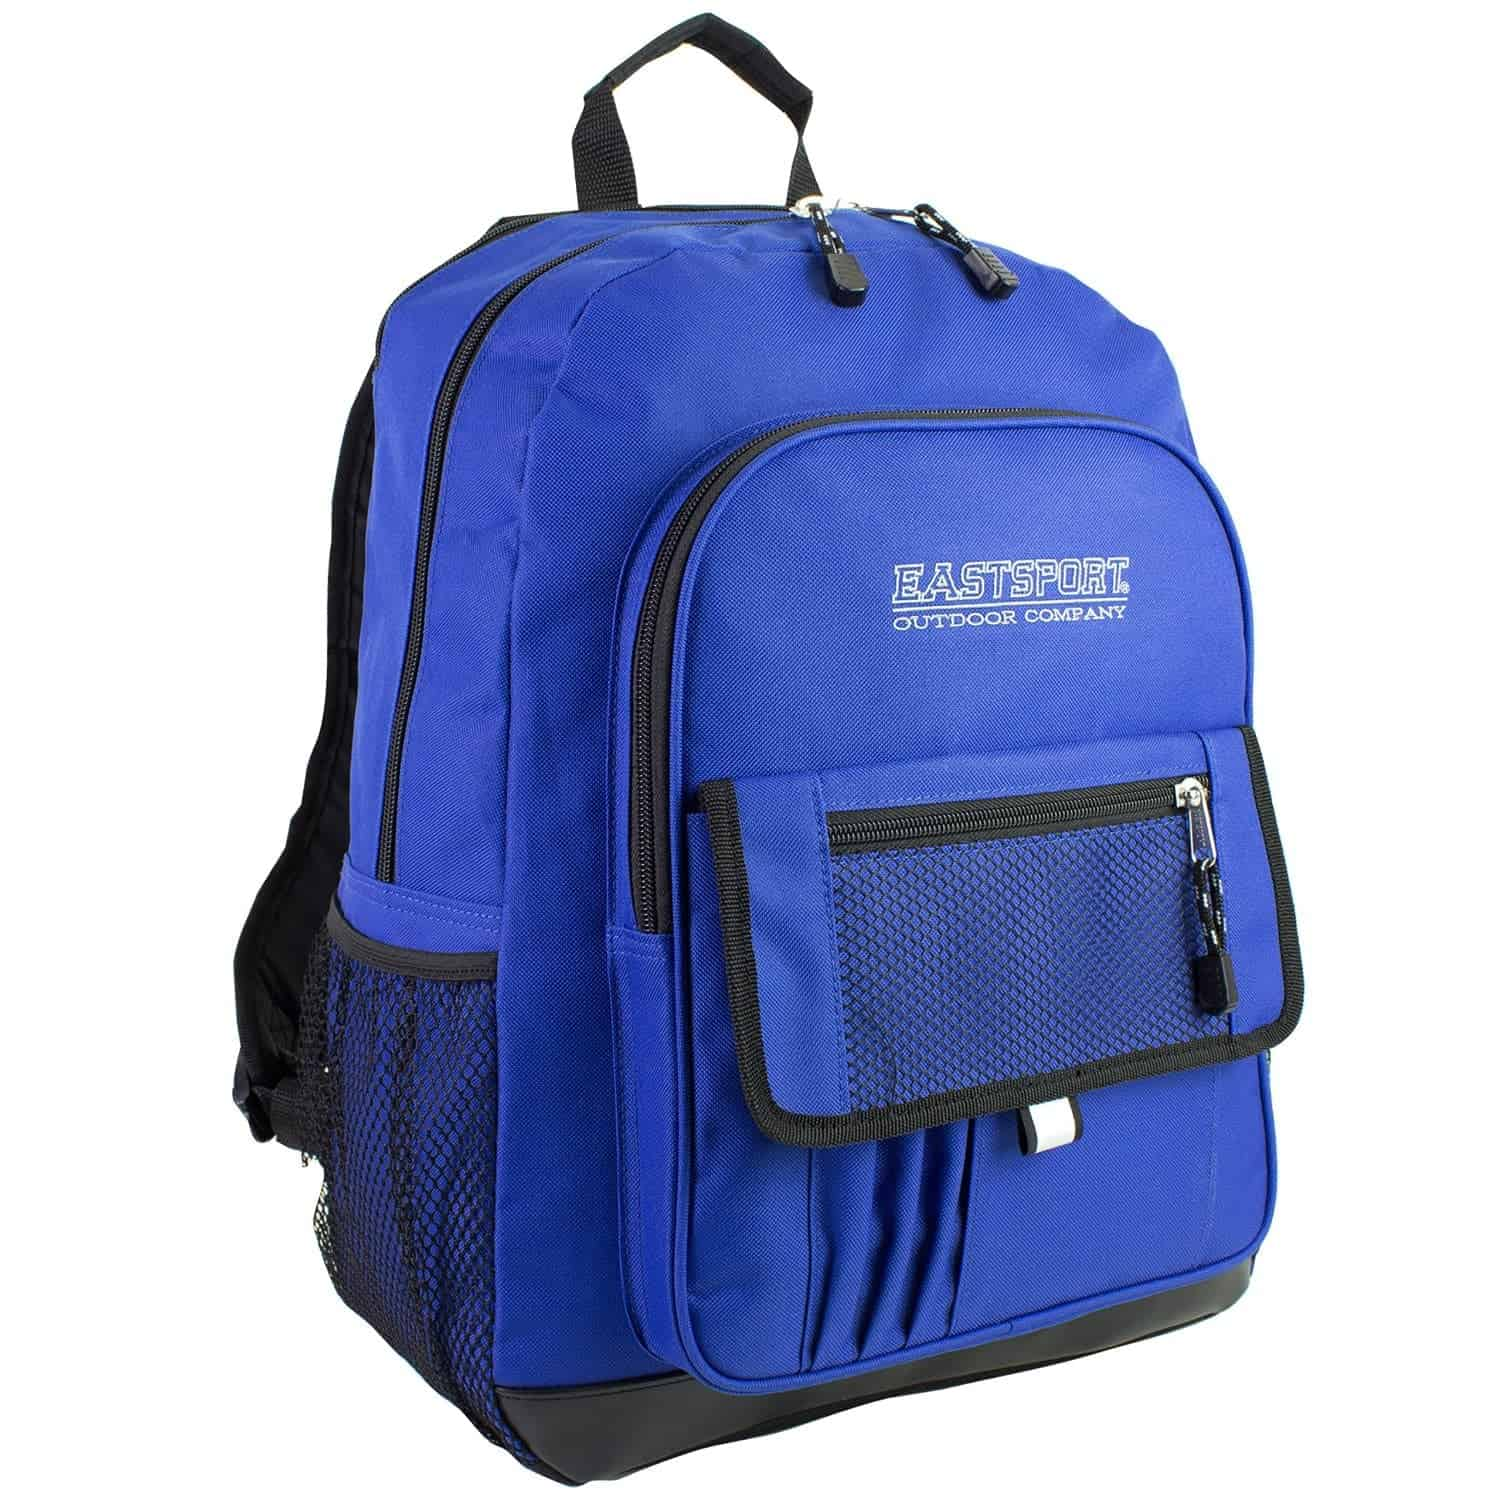 Kids Tech Backpack - This back pack has a special padded compartment made for carrying a laptop.  If your kids use laptops or iPads at school this is perfect for them!